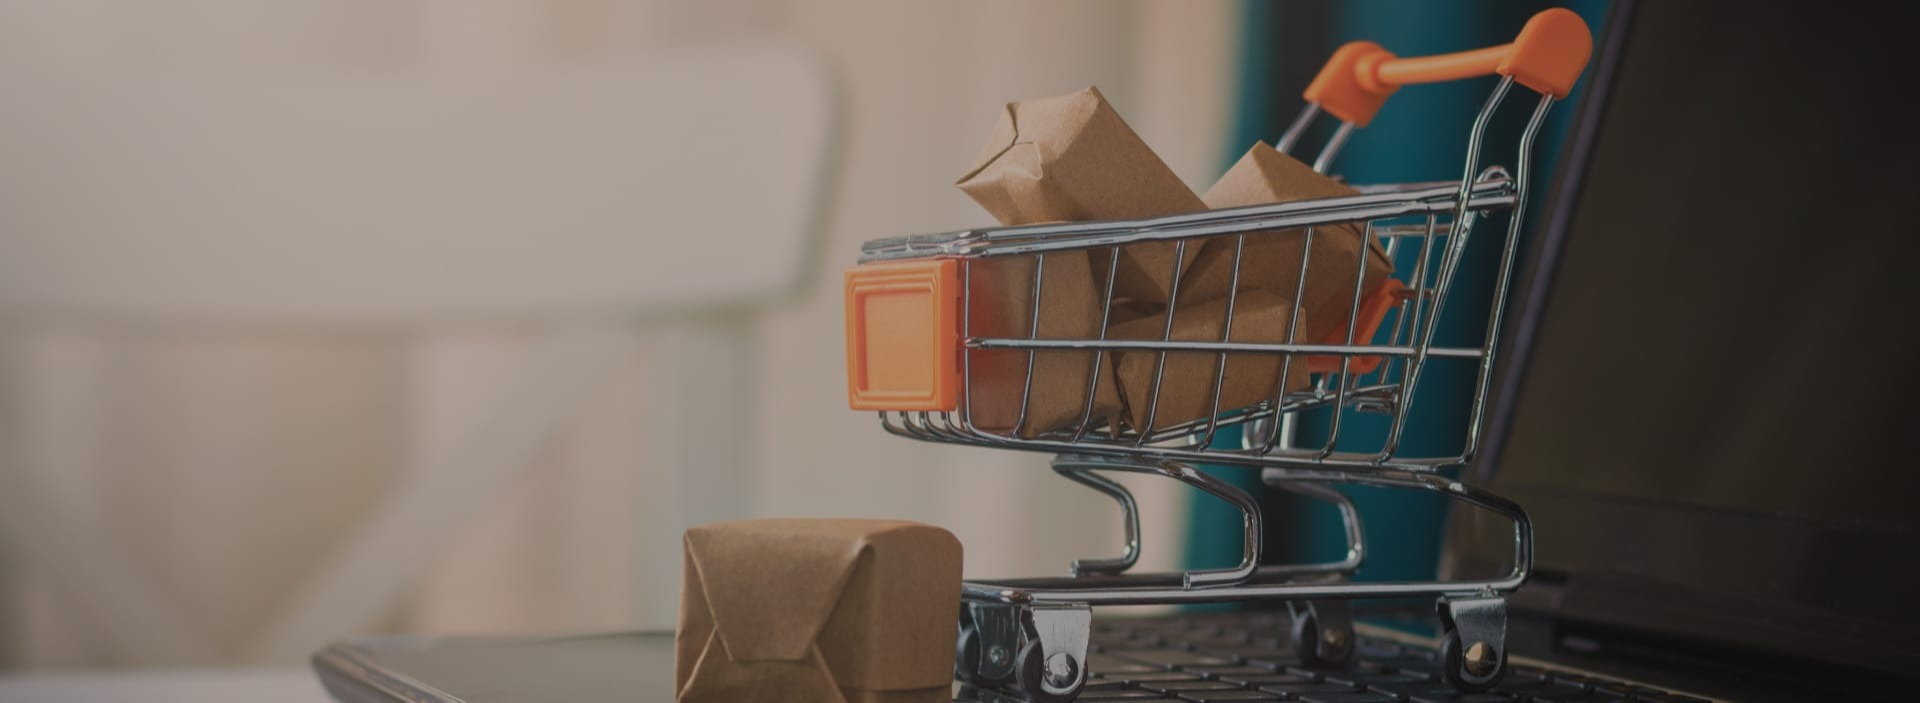 6 types of security vulnerabilities in e-commerce and how to solve them